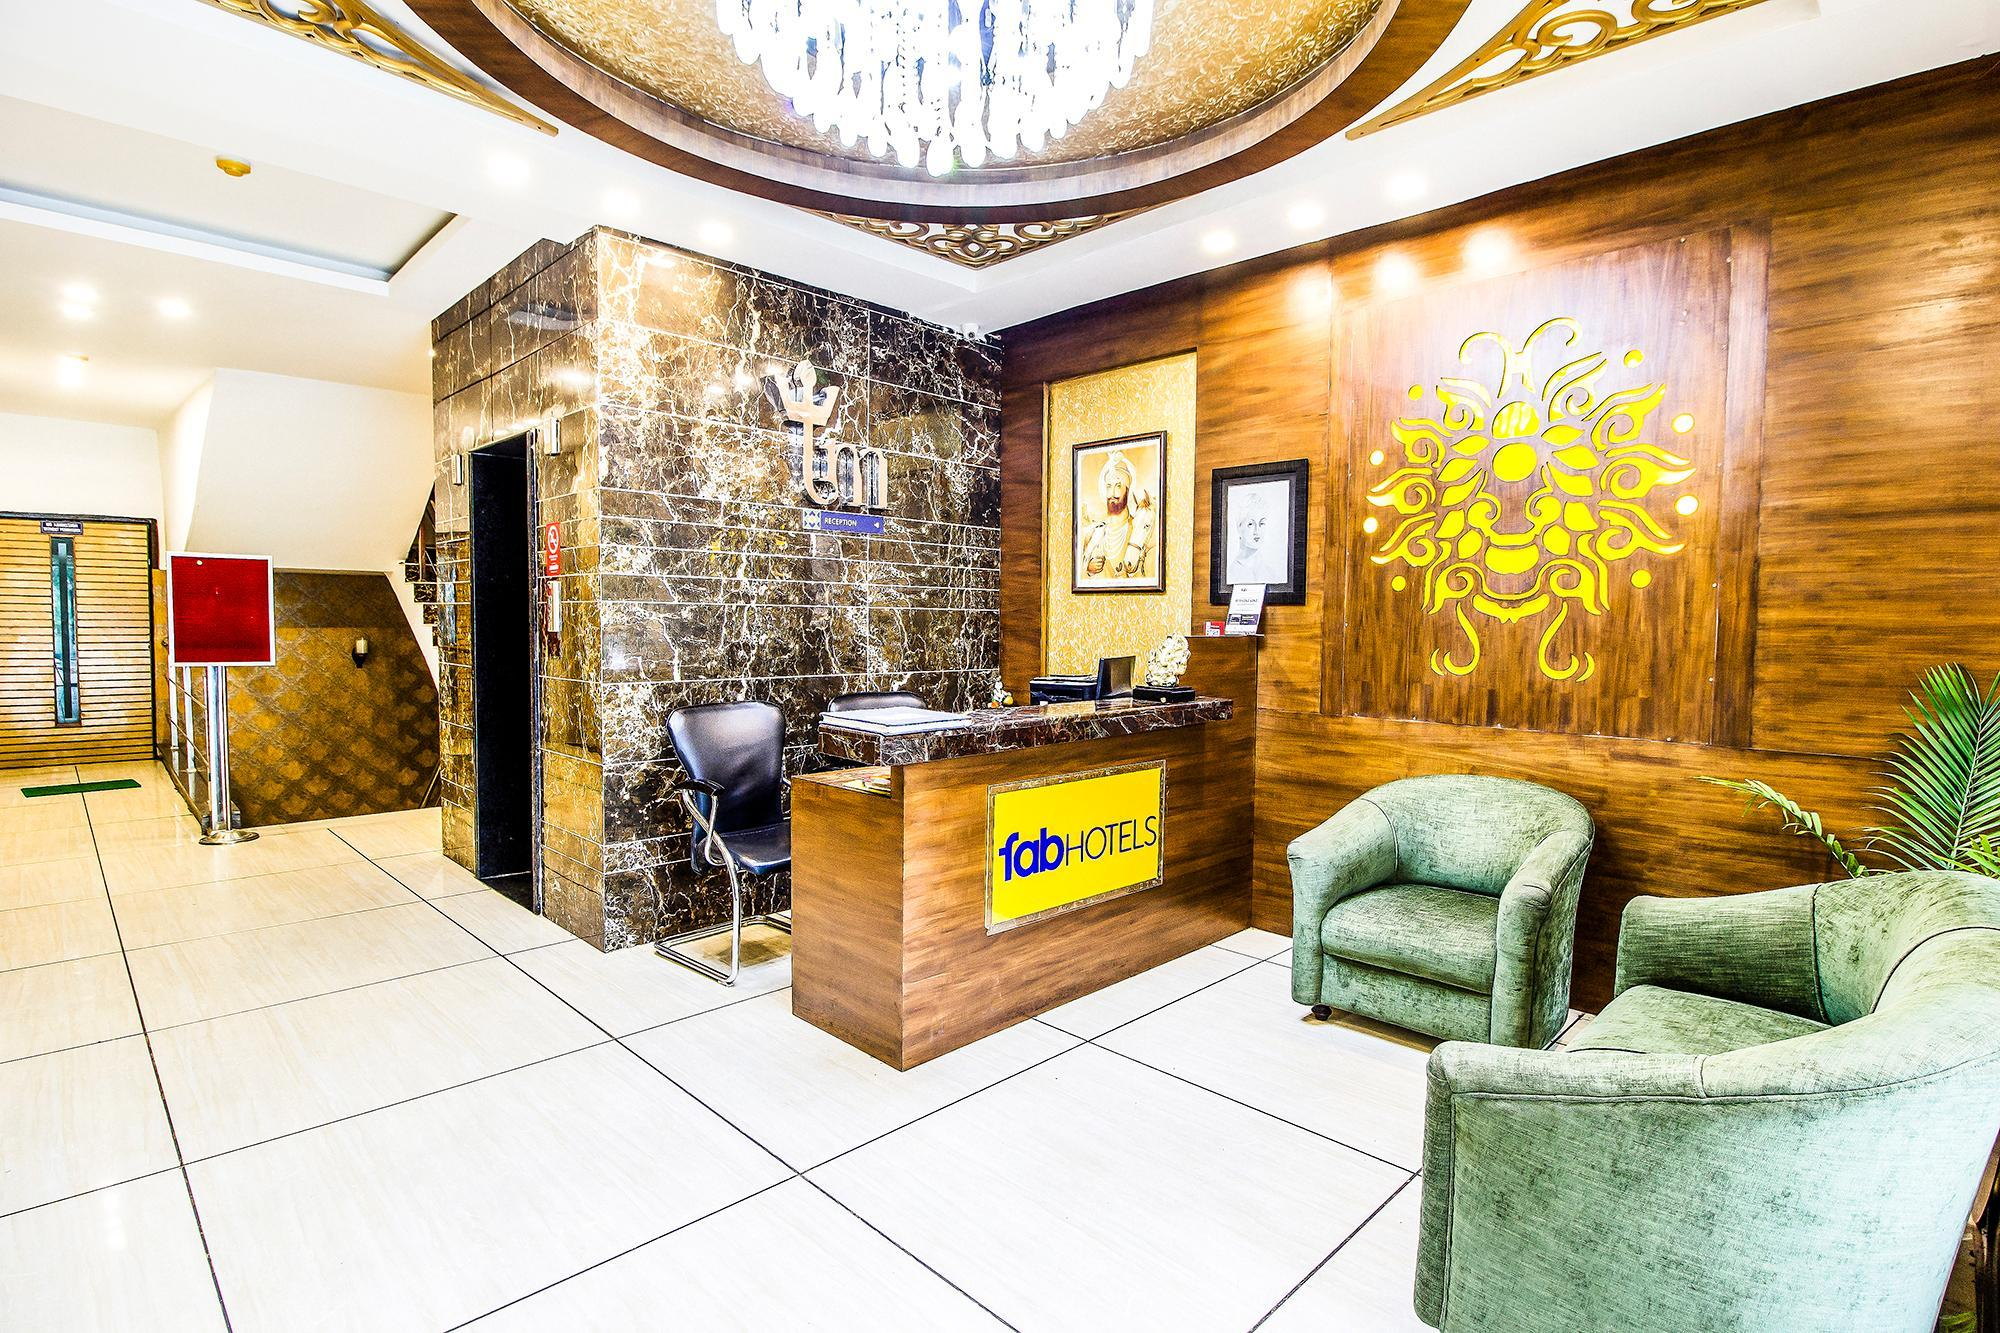 FabHotel Le Monarque Piccadily Chowk